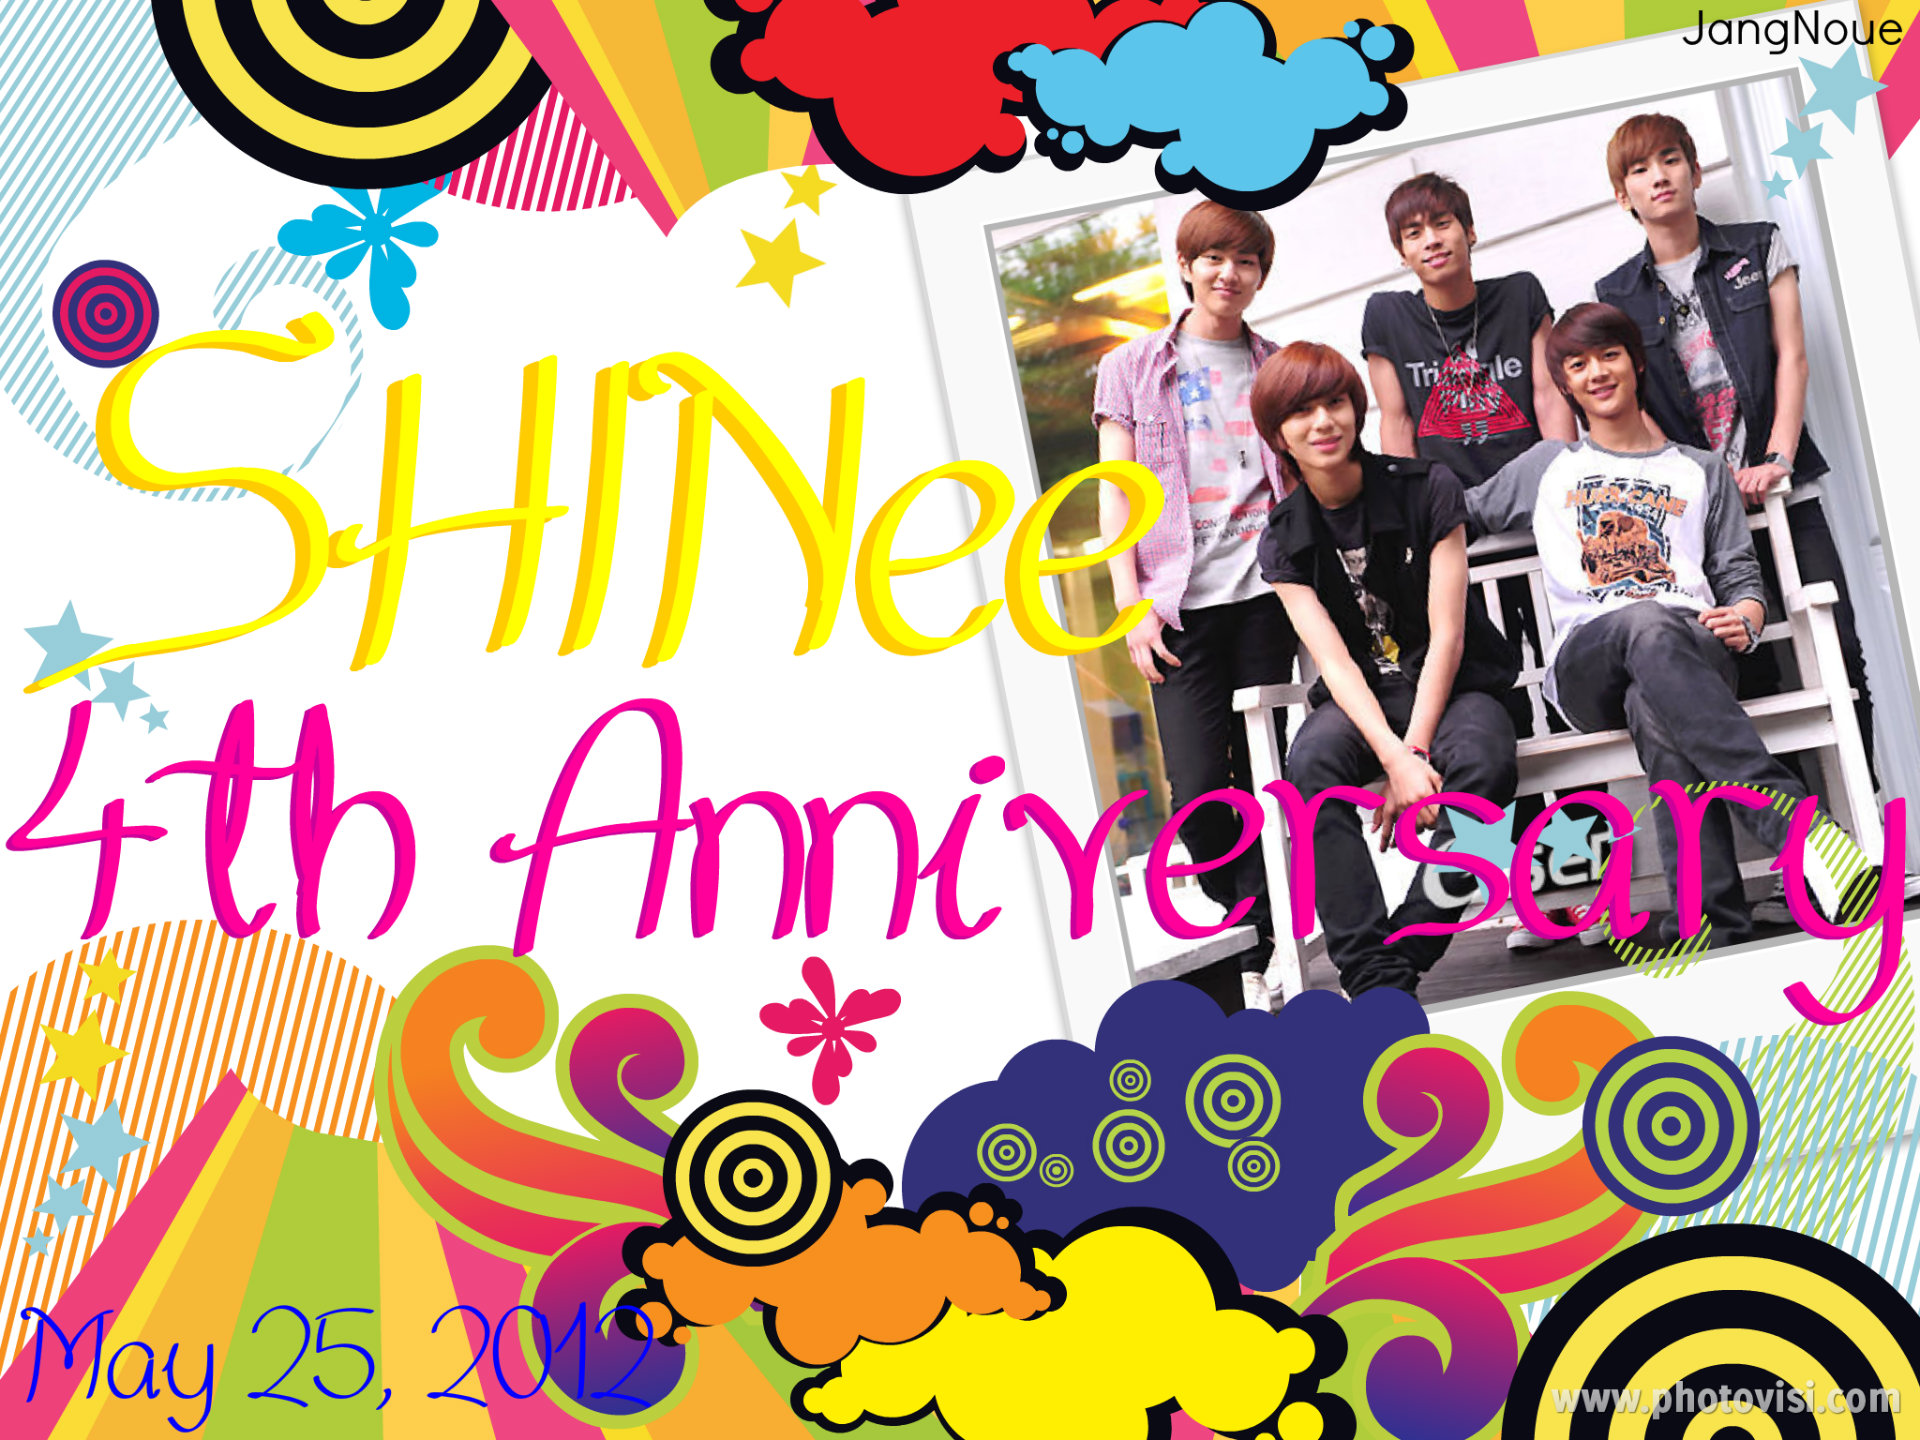 SHINee 4th Anniversary by JangNoue